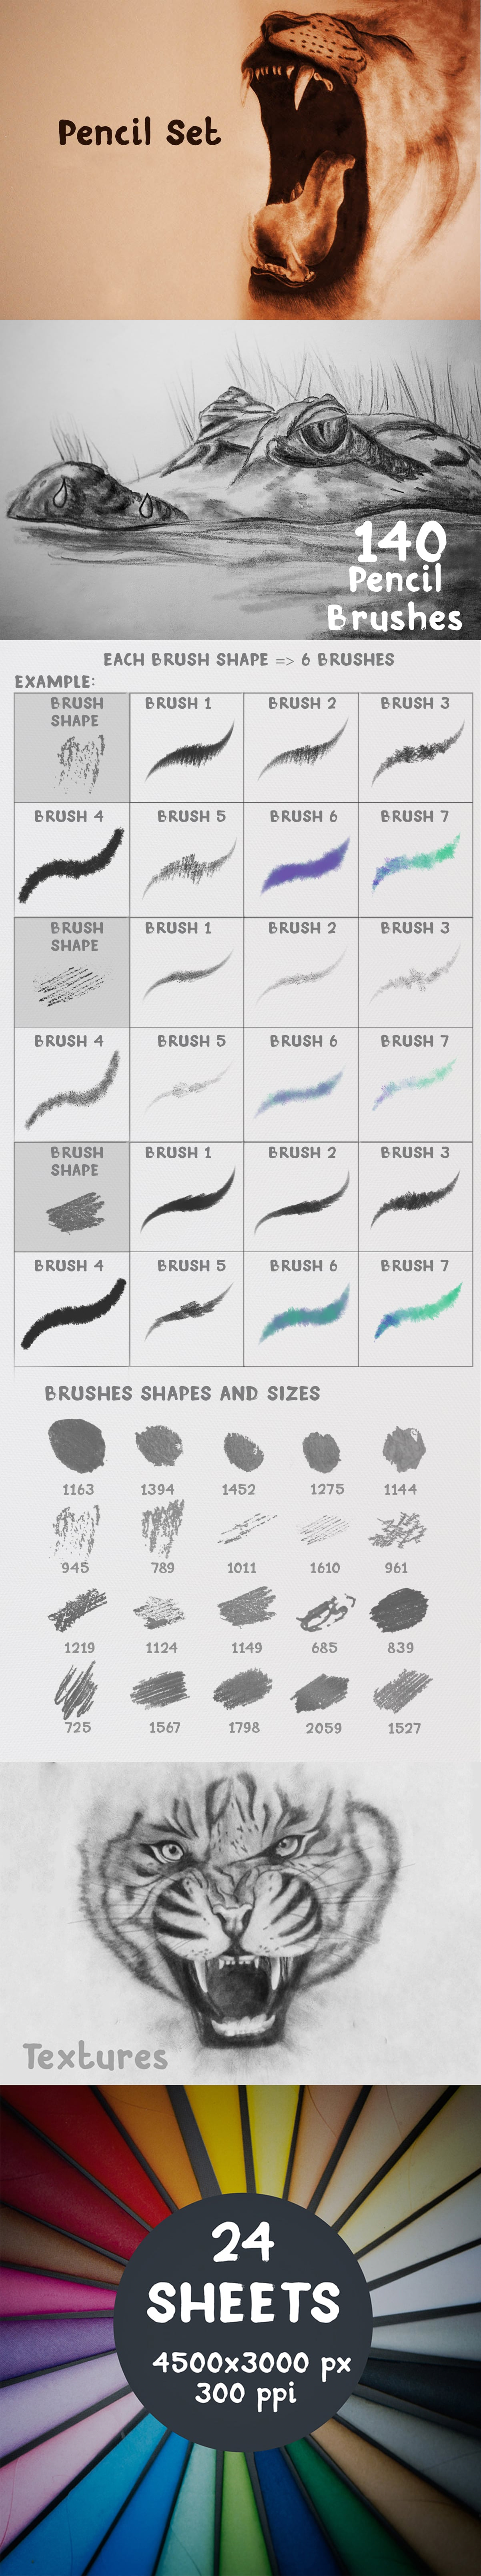 2500+ Artistic Brushes + Extra Assets - 02 Pencil